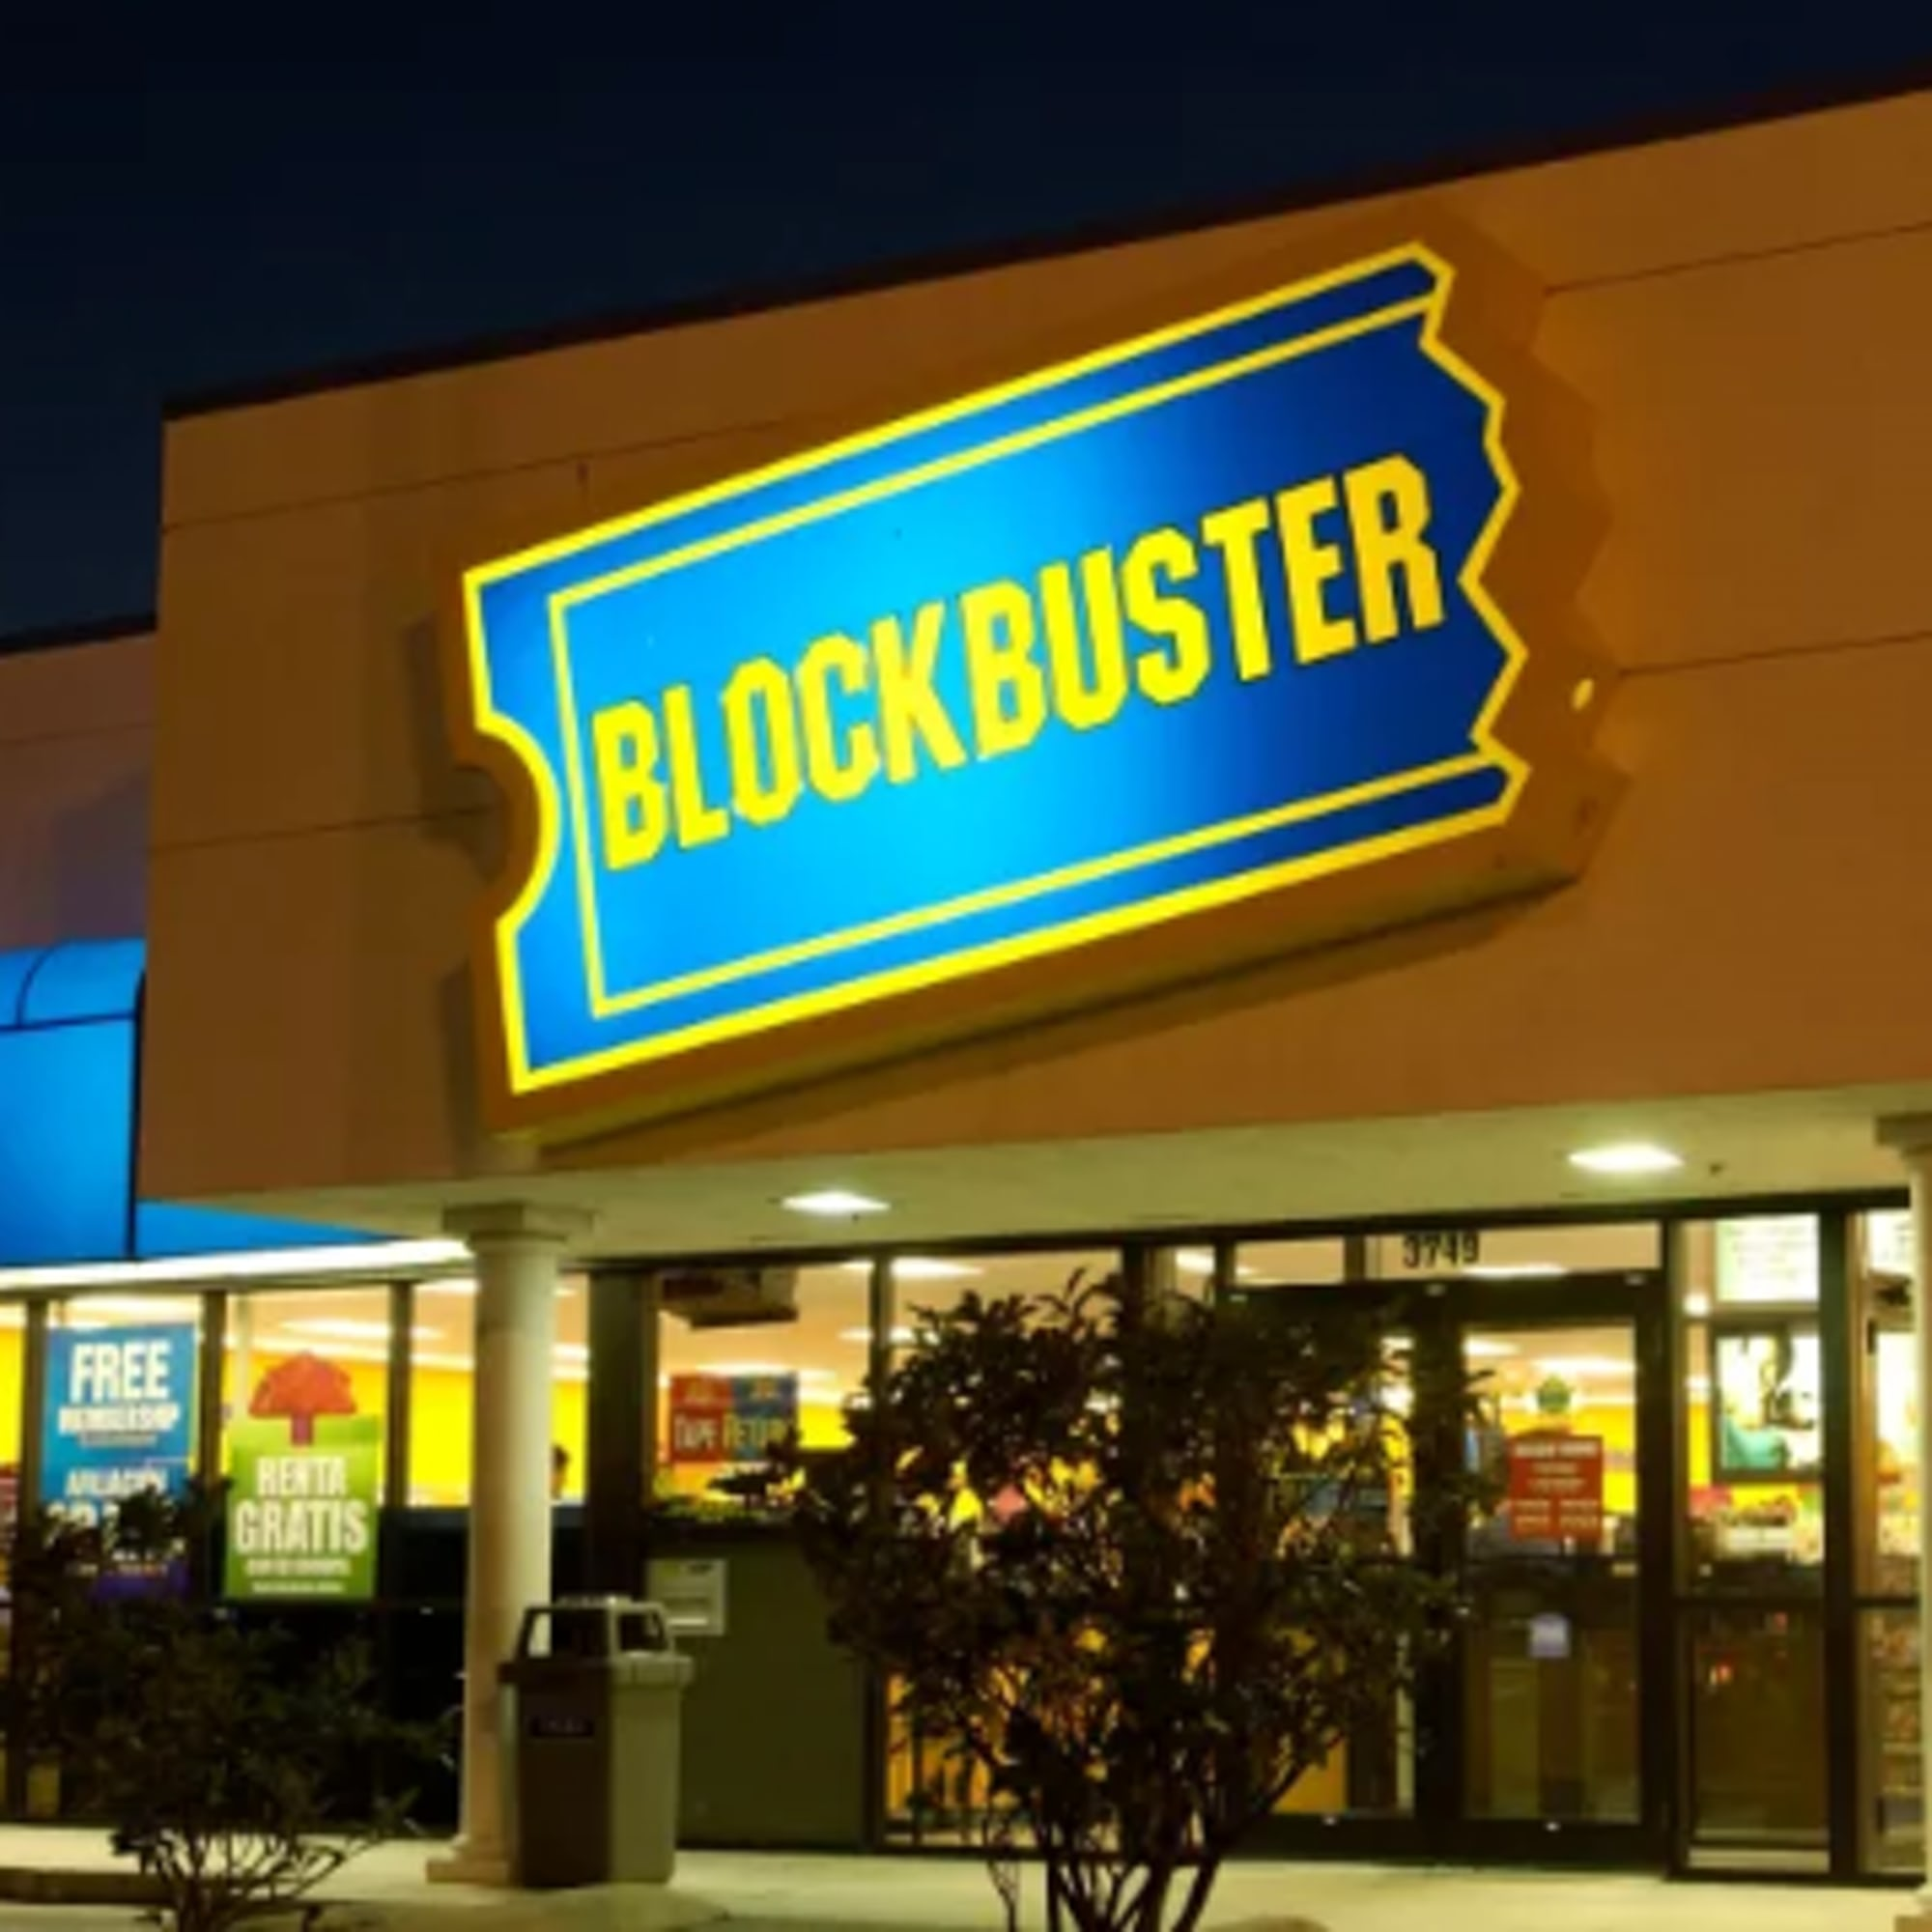 Weekend Round-Up: The Palm Trees In L.A., The Car Of The Future, And The Very Last Blockbuster Video blockbuster